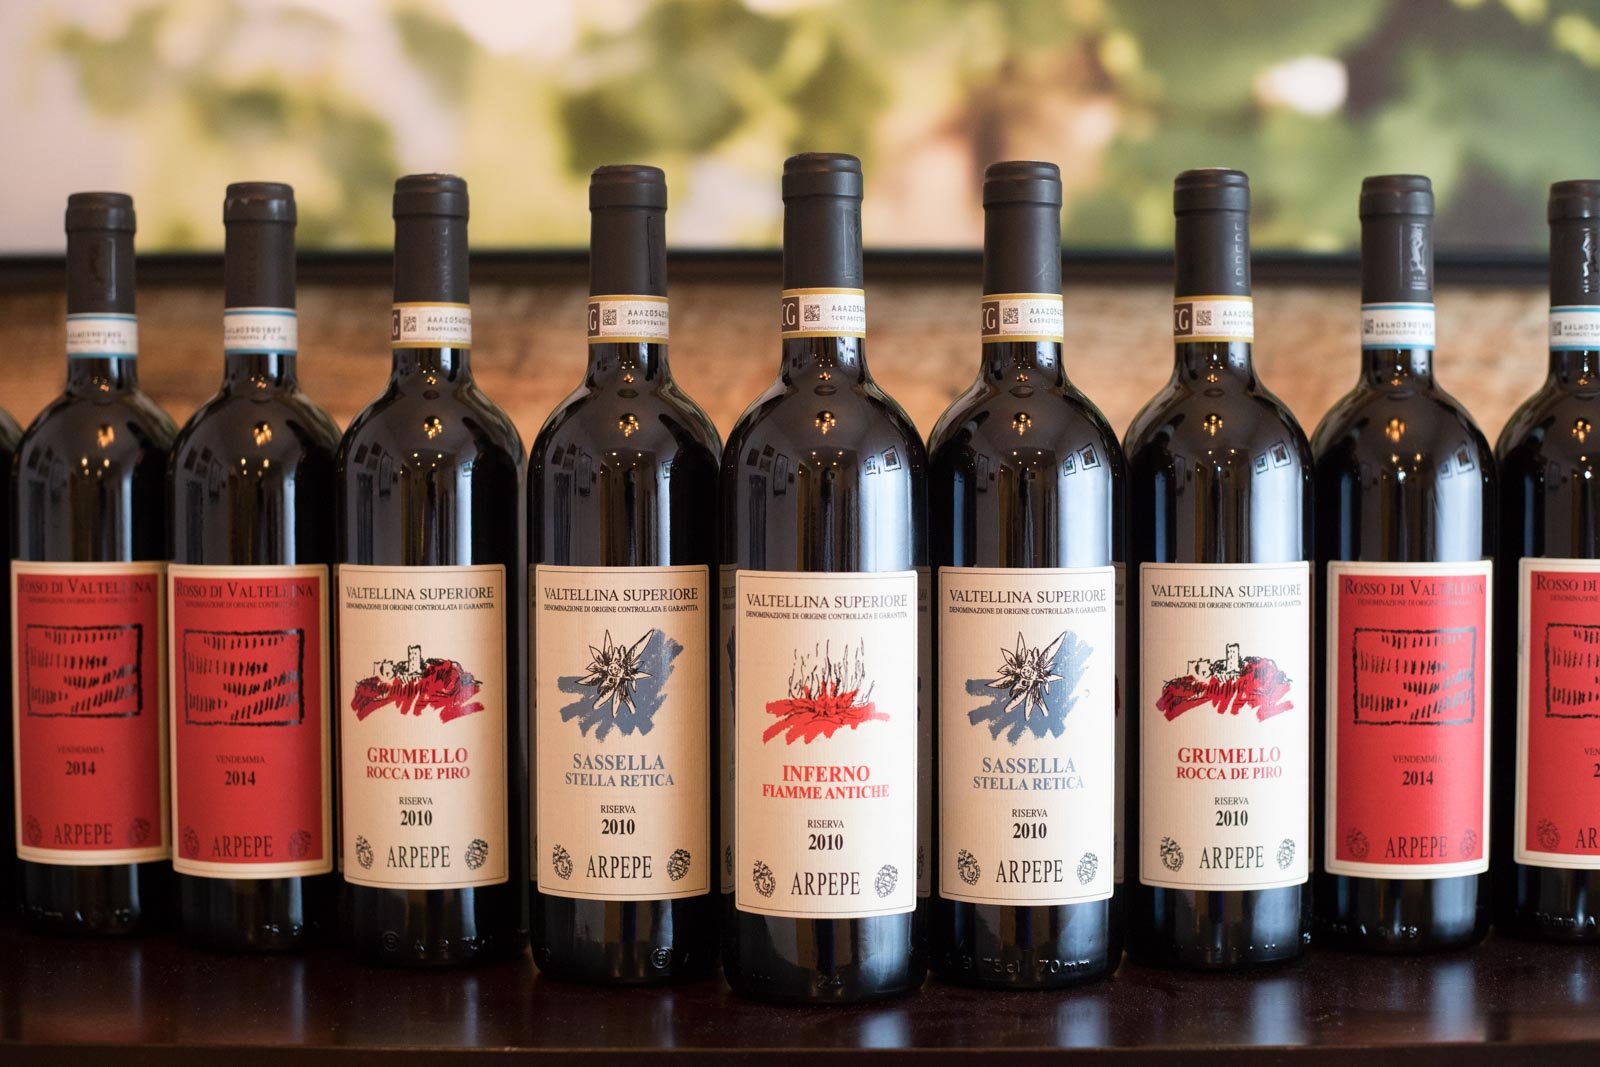 To this day, ARPEPE is the only winery I've bought a case of wine from. Even the normal vintage wines — such as the 2010s pictured here — are structured for long-term aging. ©Kevin Day/Opening a Bottle